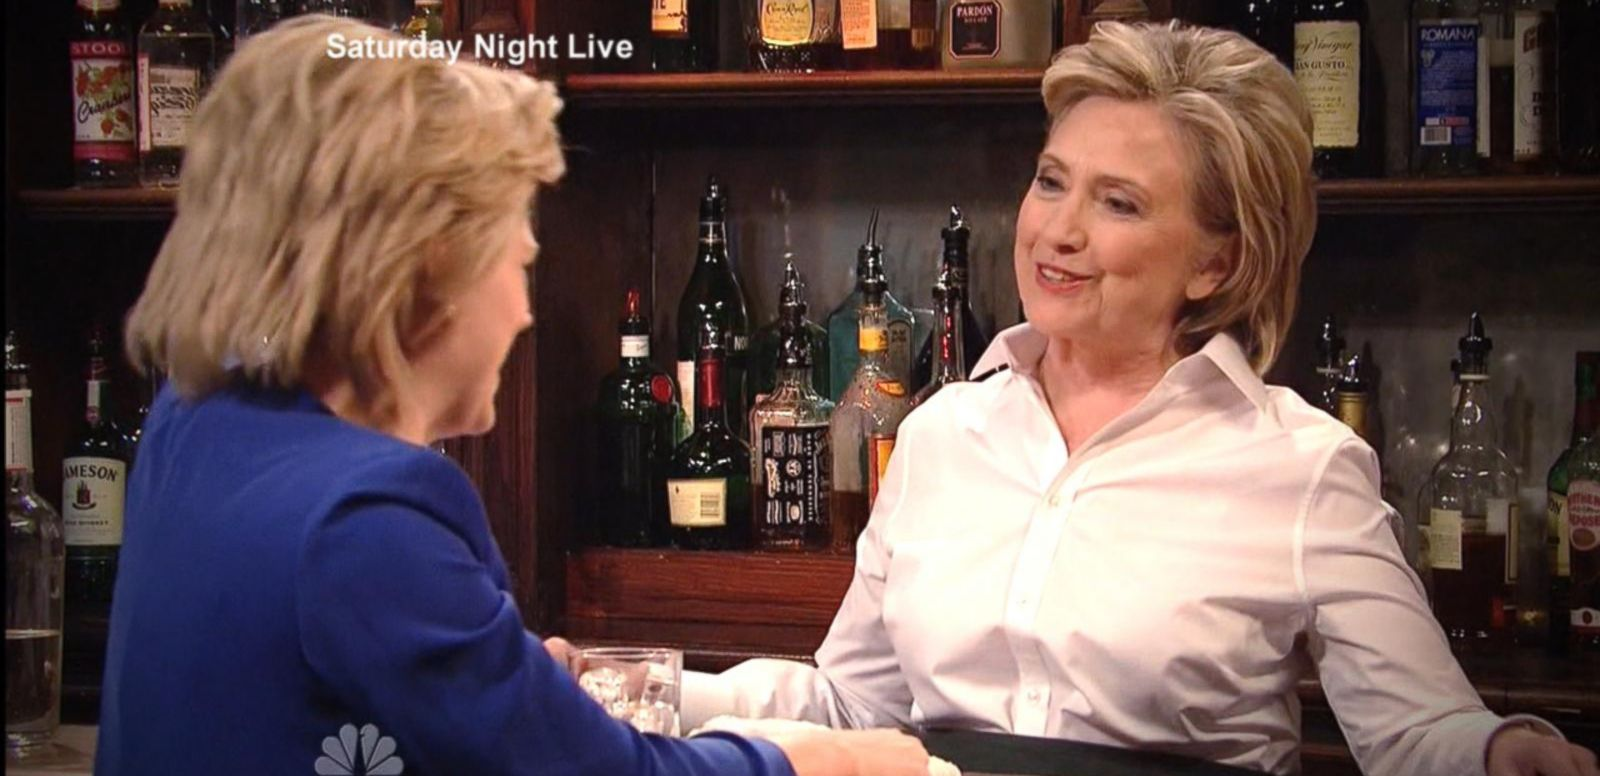 VIDEO: Hillary Clinton Gets Fans Laughing on 'Saturday Night Live'